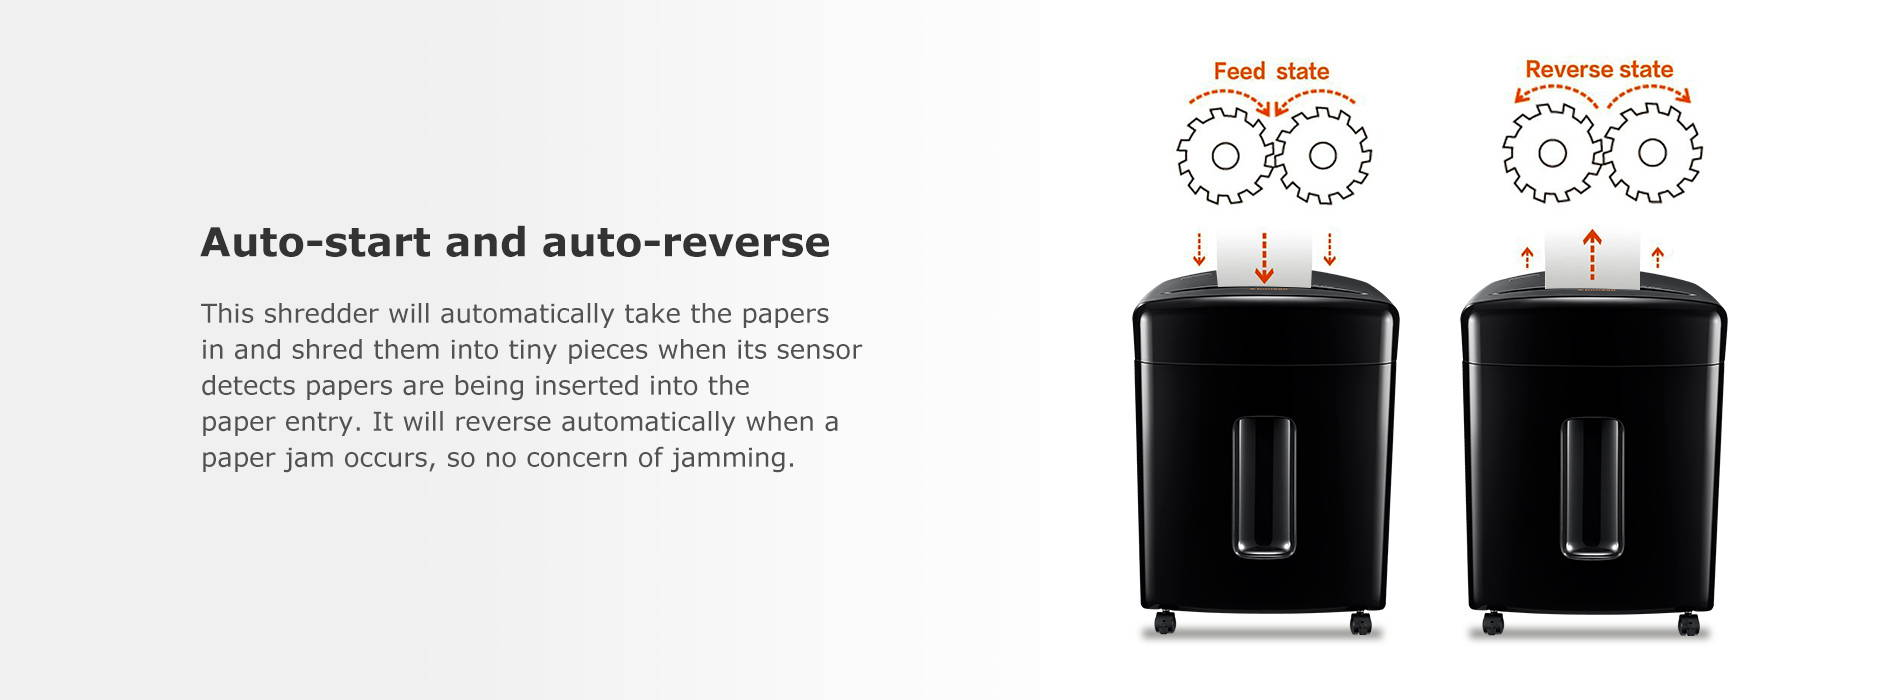 Auto-start and auto-reverse  This shredder will automatically take the papers in and shred them into tiny pieces when its sensor detects papers are being inserted into the paper entry. It will reverse automatically when a paper jam occurs, so no concern of jamming.